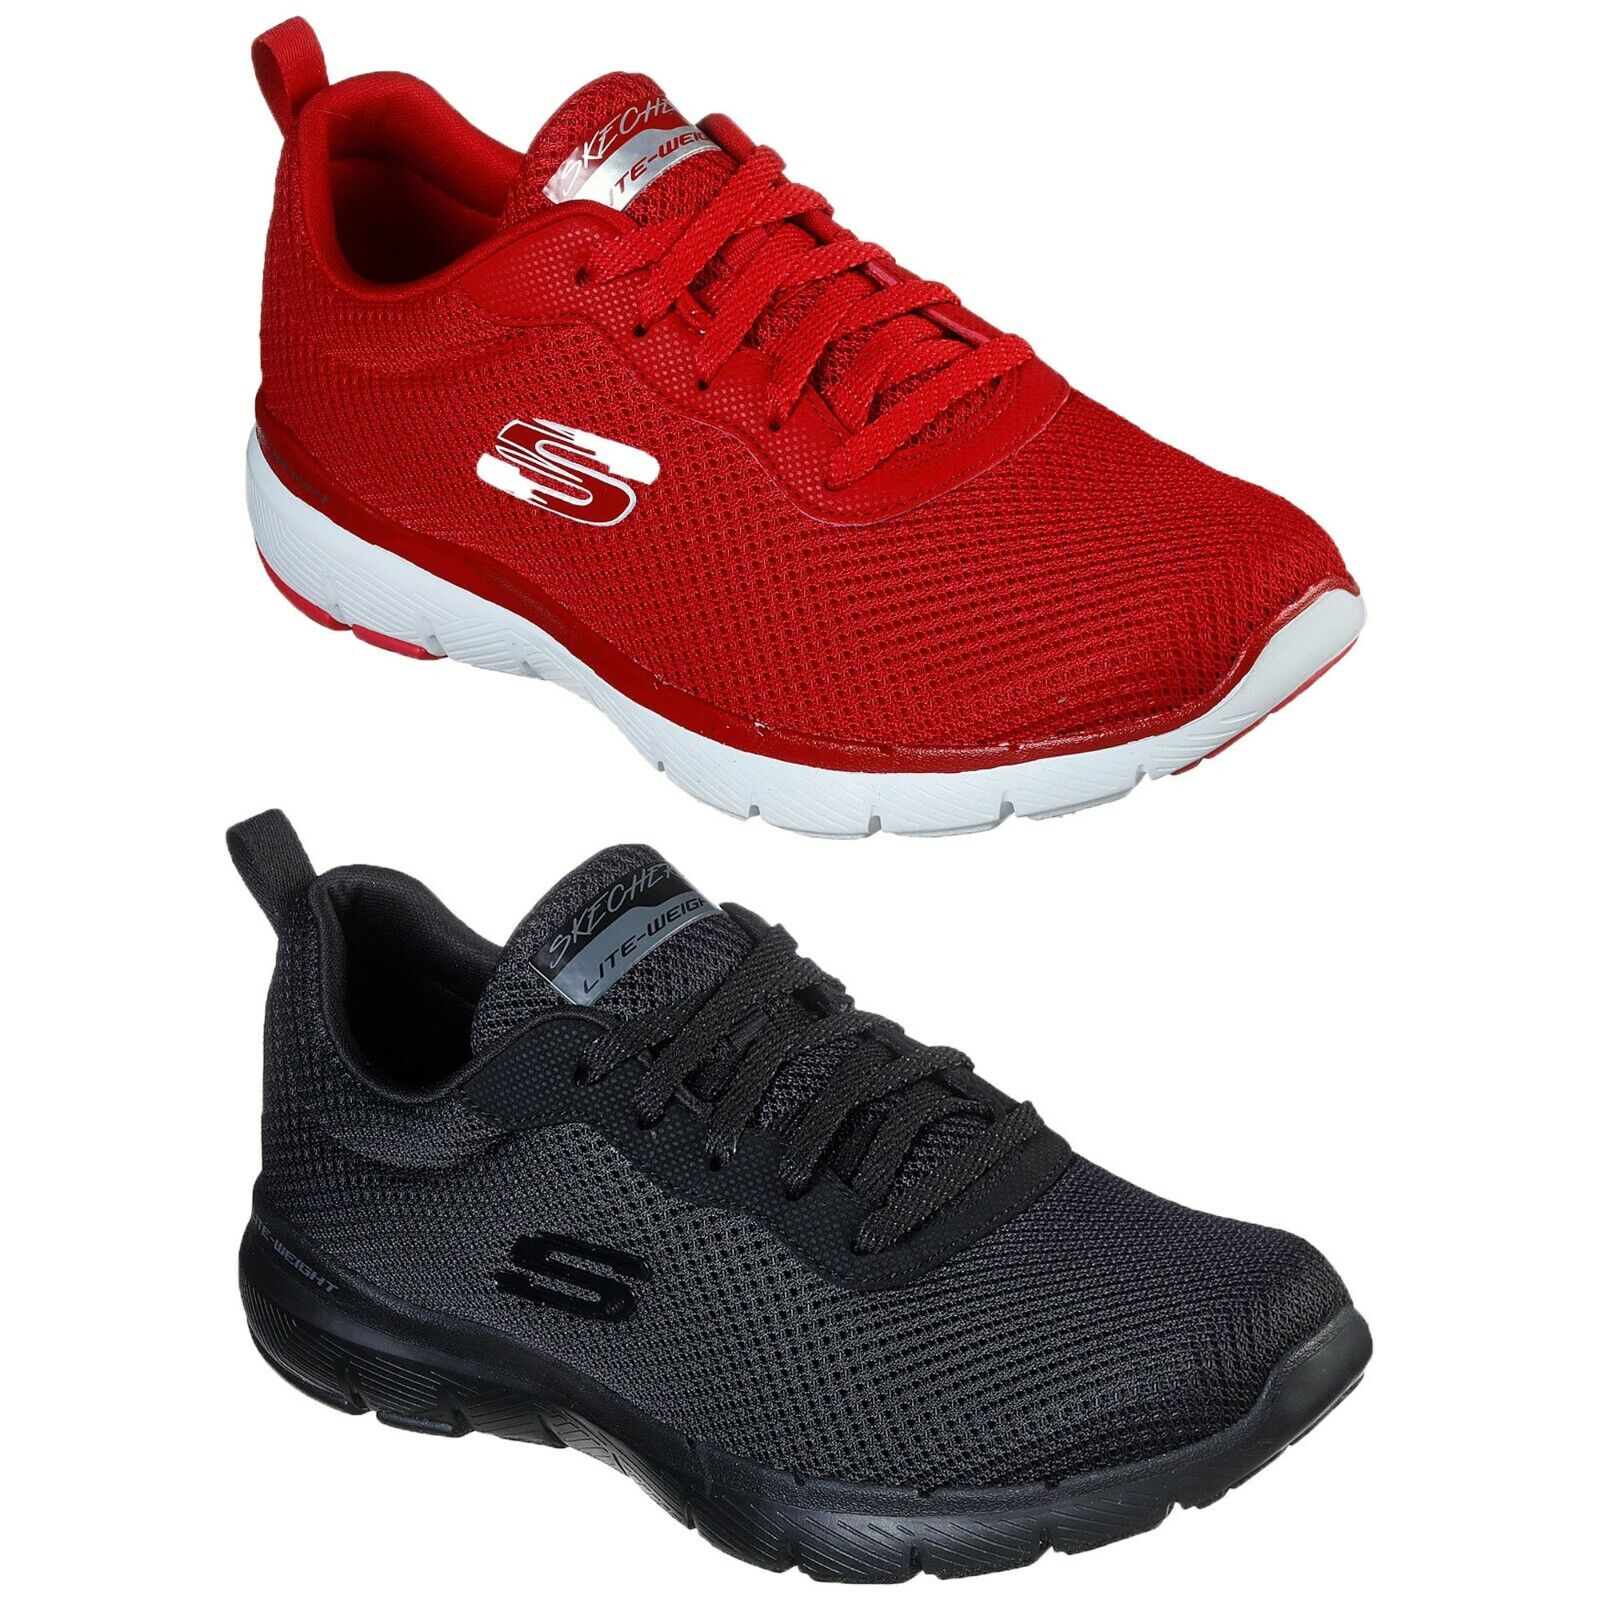 Womens Skechers 13070 Flex Appeal 3.0 First Insight Athletic Sport Walking Shoes